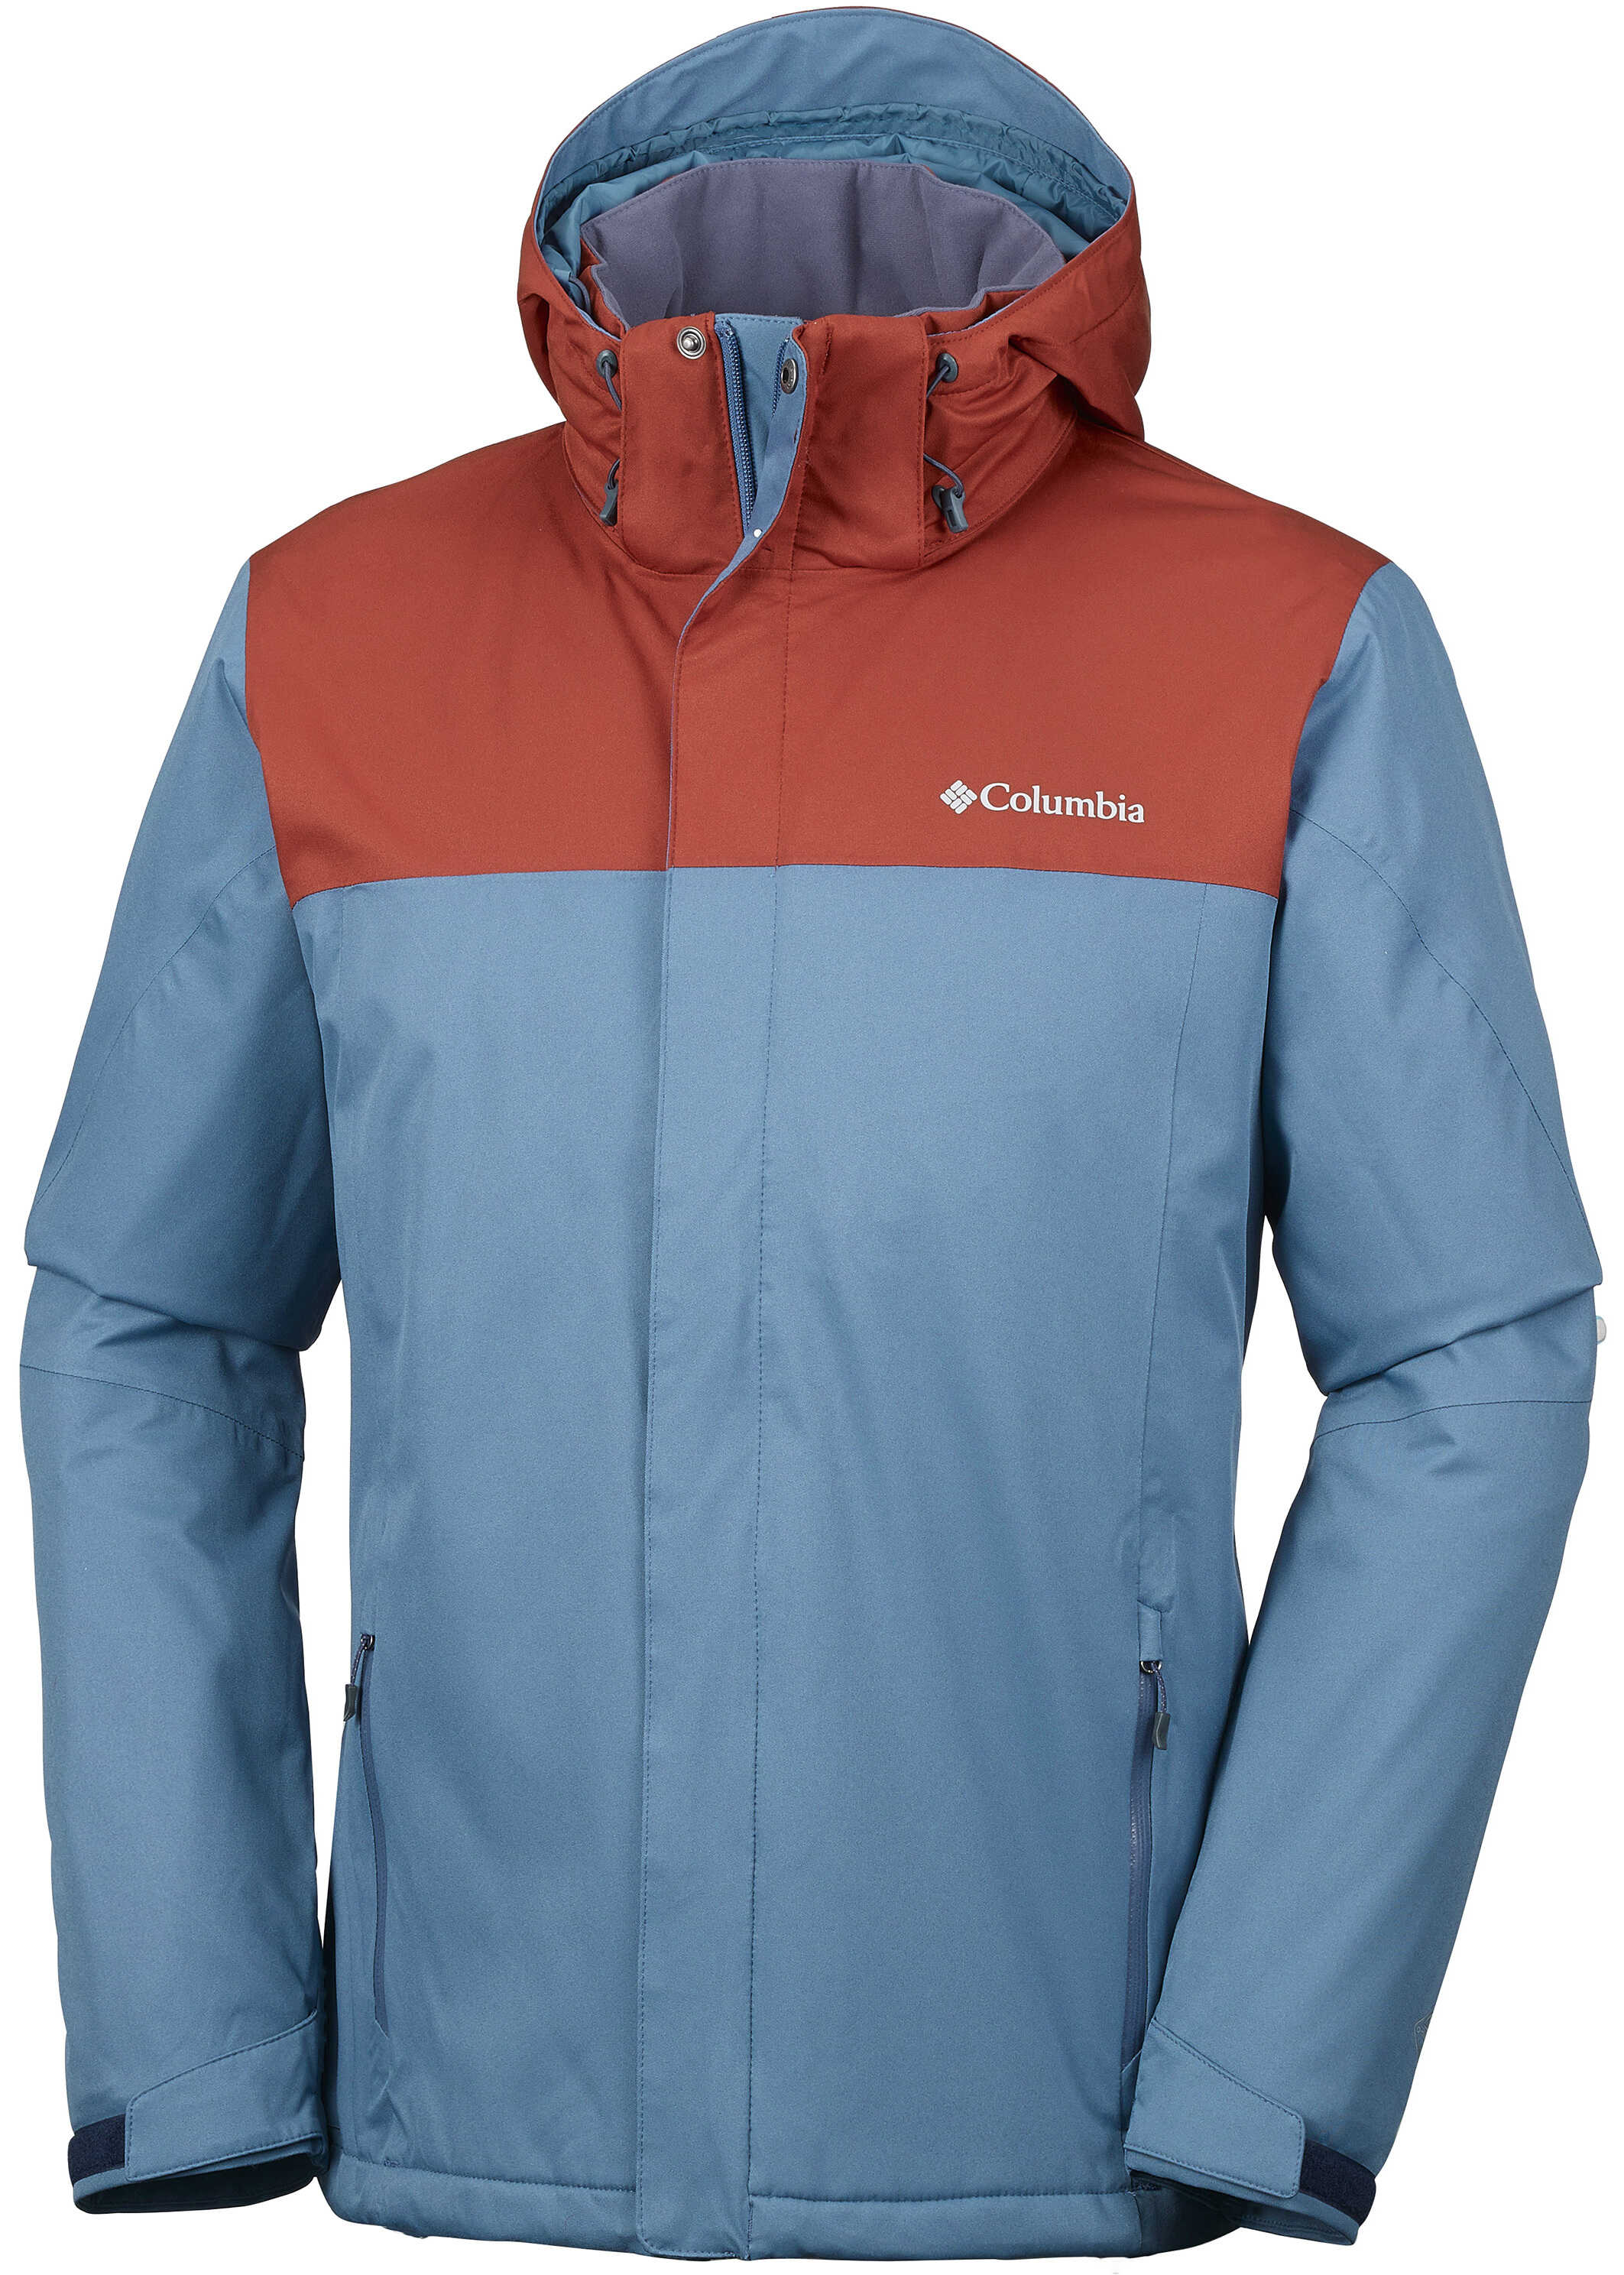 Columbia Everett Mountain ™ Jacket-Super Blue Super Blue